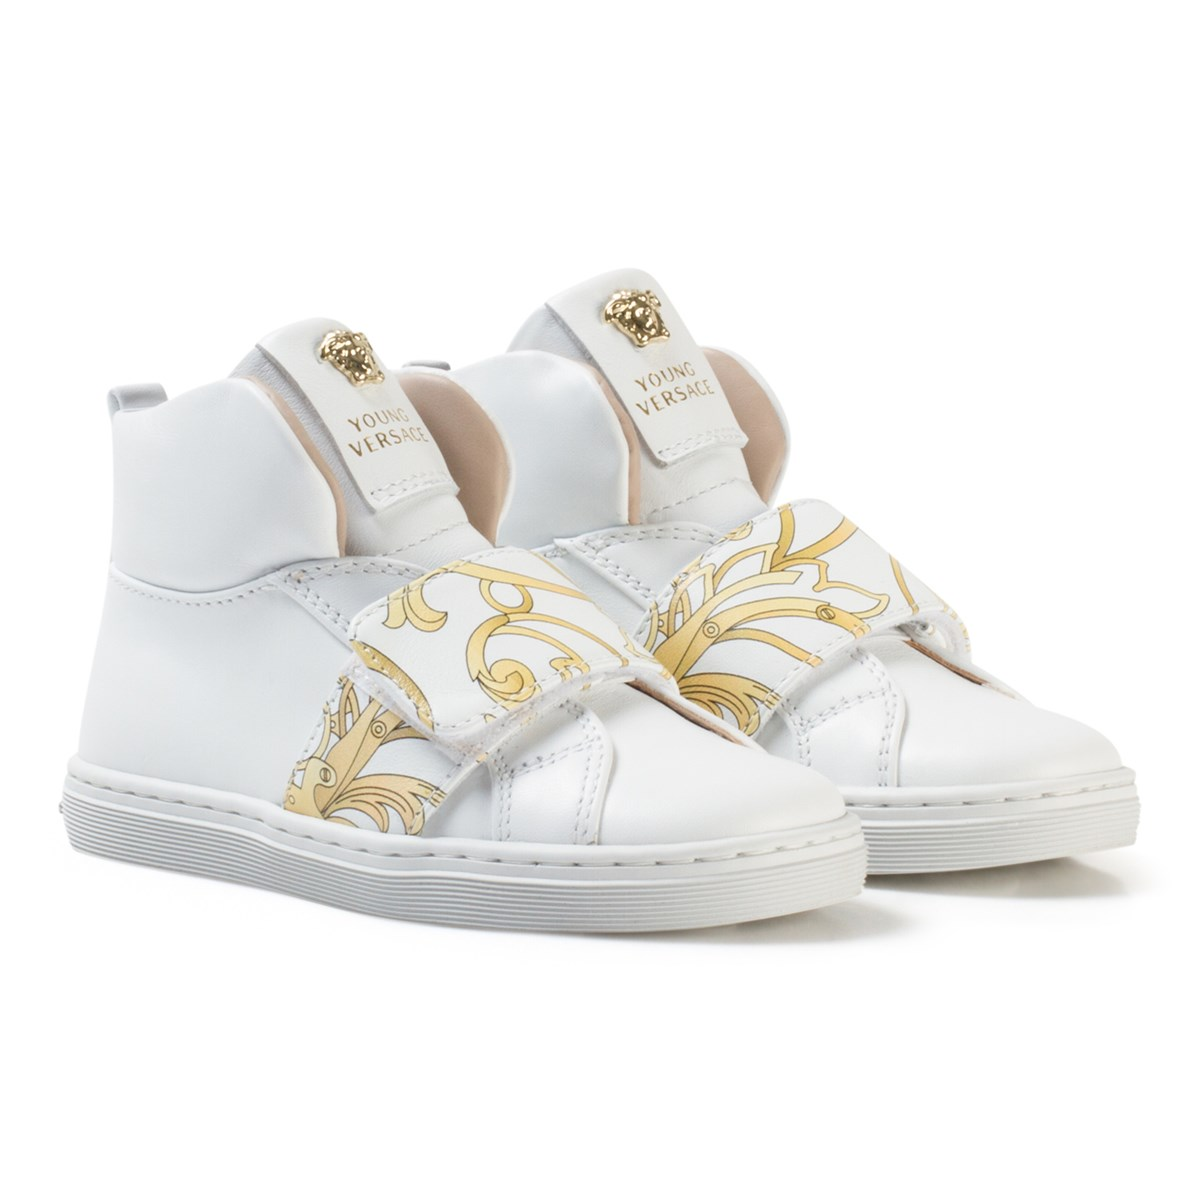 af68d552 Versace - White and Gold Baroque Print Medusa High Top Trainers ...